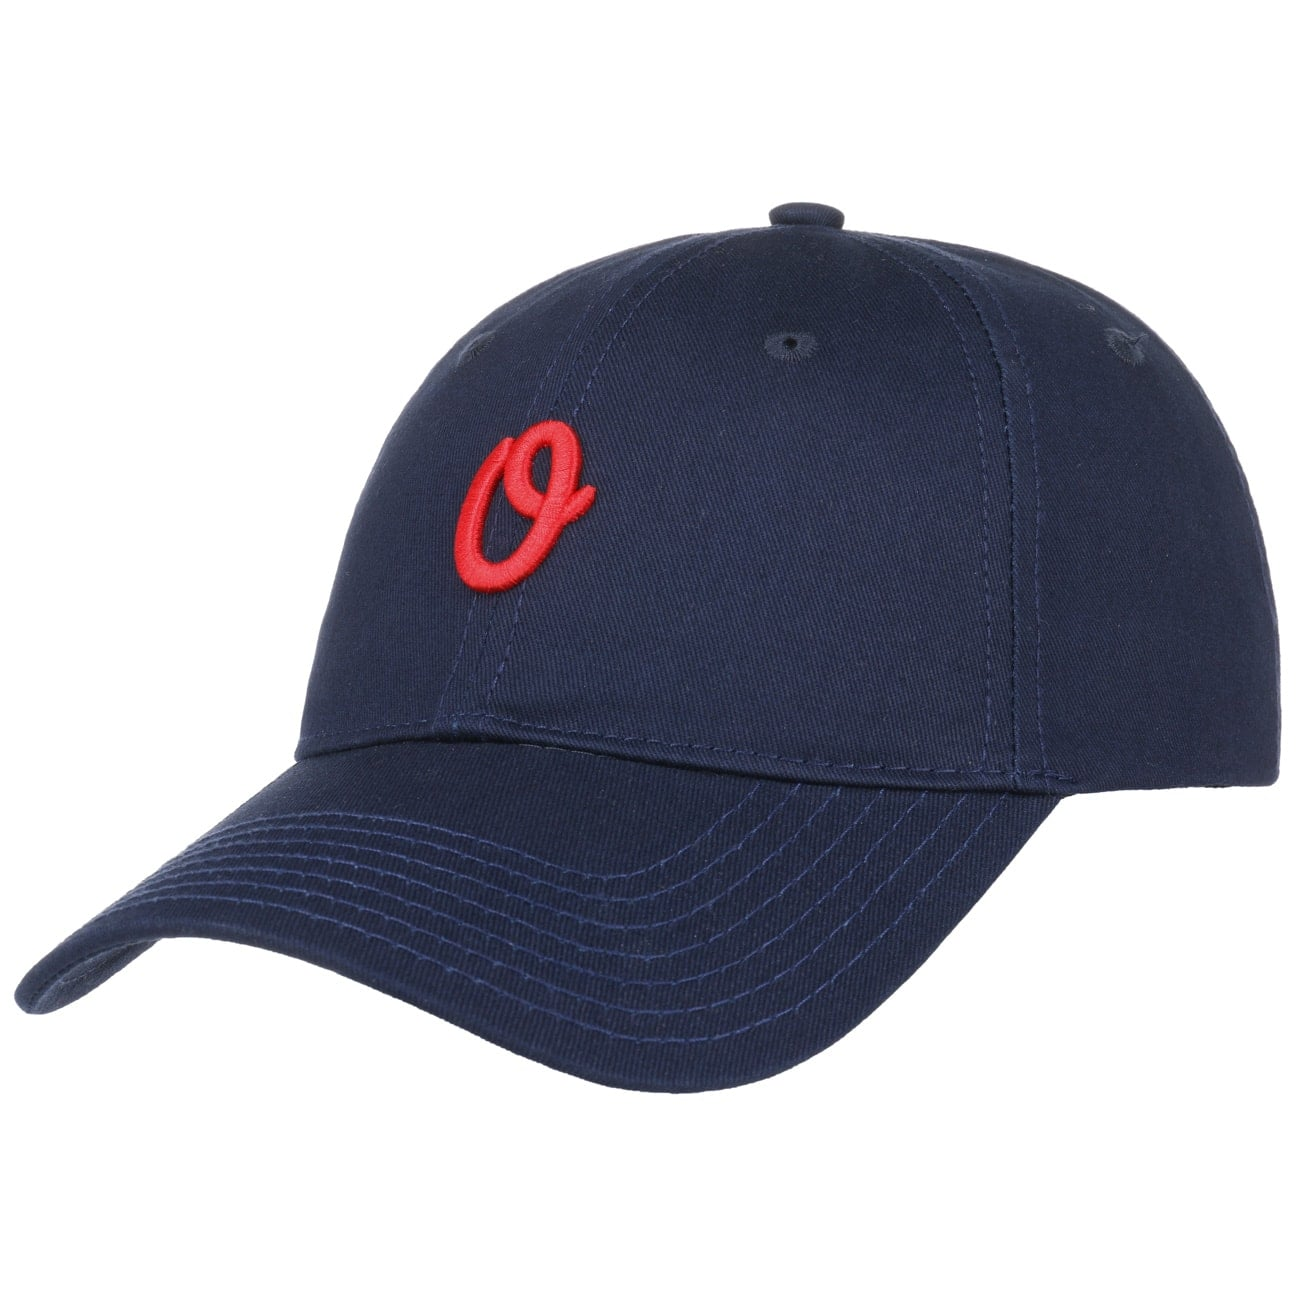 Gorra Miles Old Deporte by Official Headwear  gorra de baseball